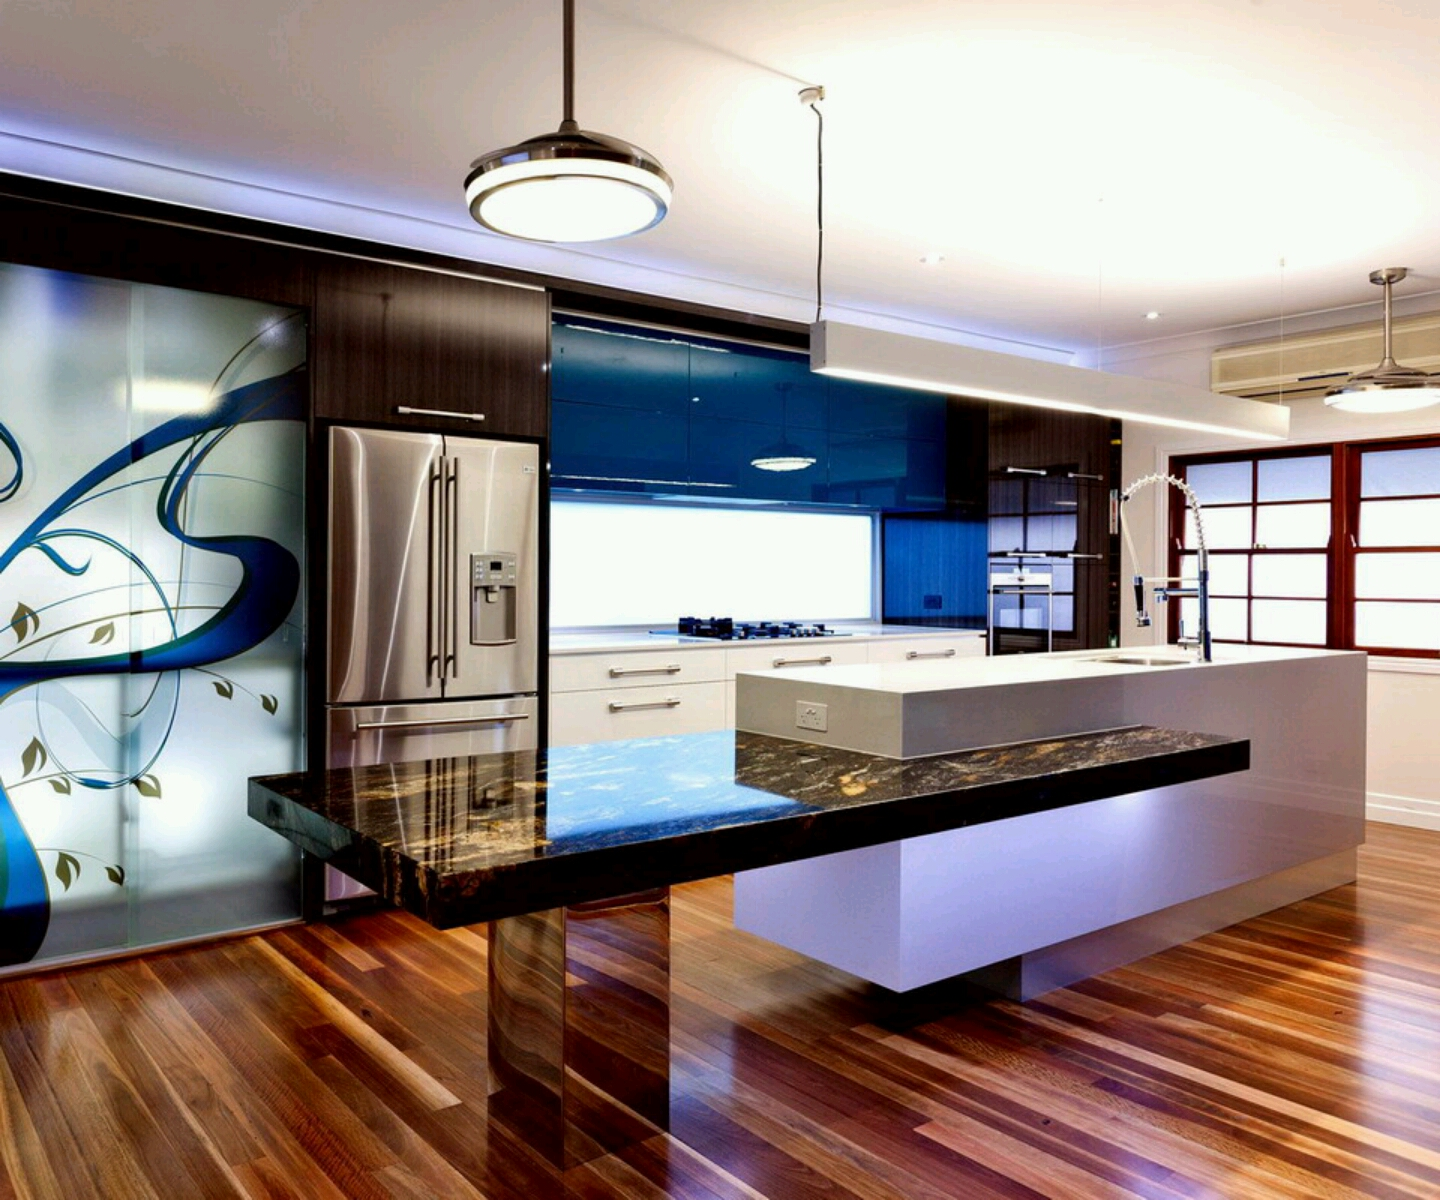 New home designs latest ultra modern kitchen designs ideas for Home ideas kitchen